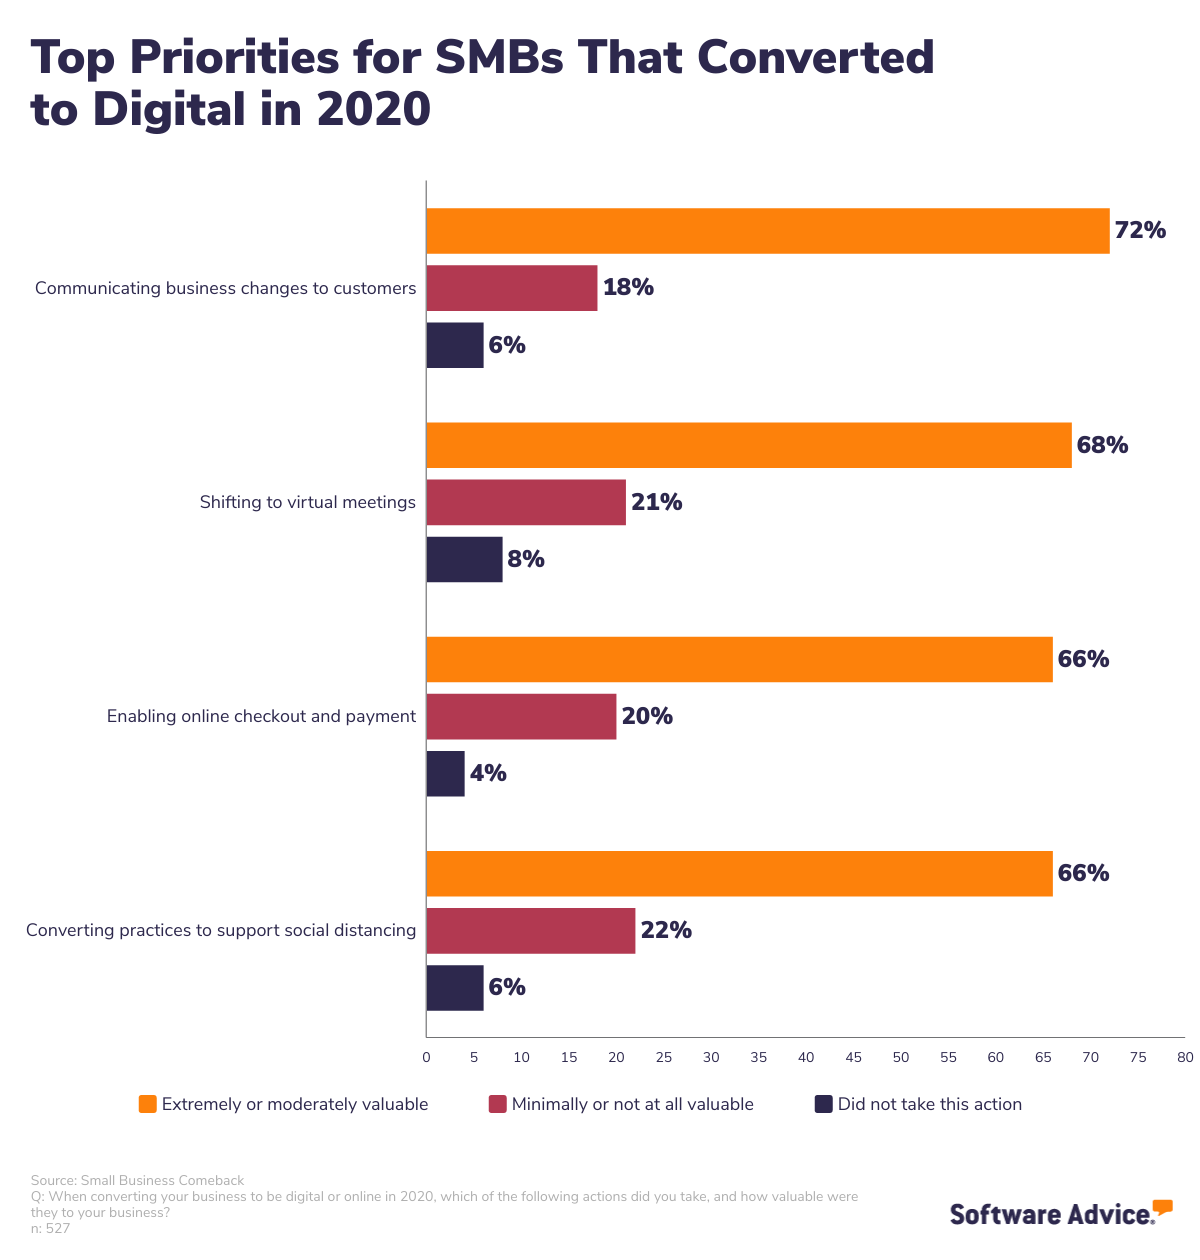 SMBs identified their top priorities when converting to digital in 2020